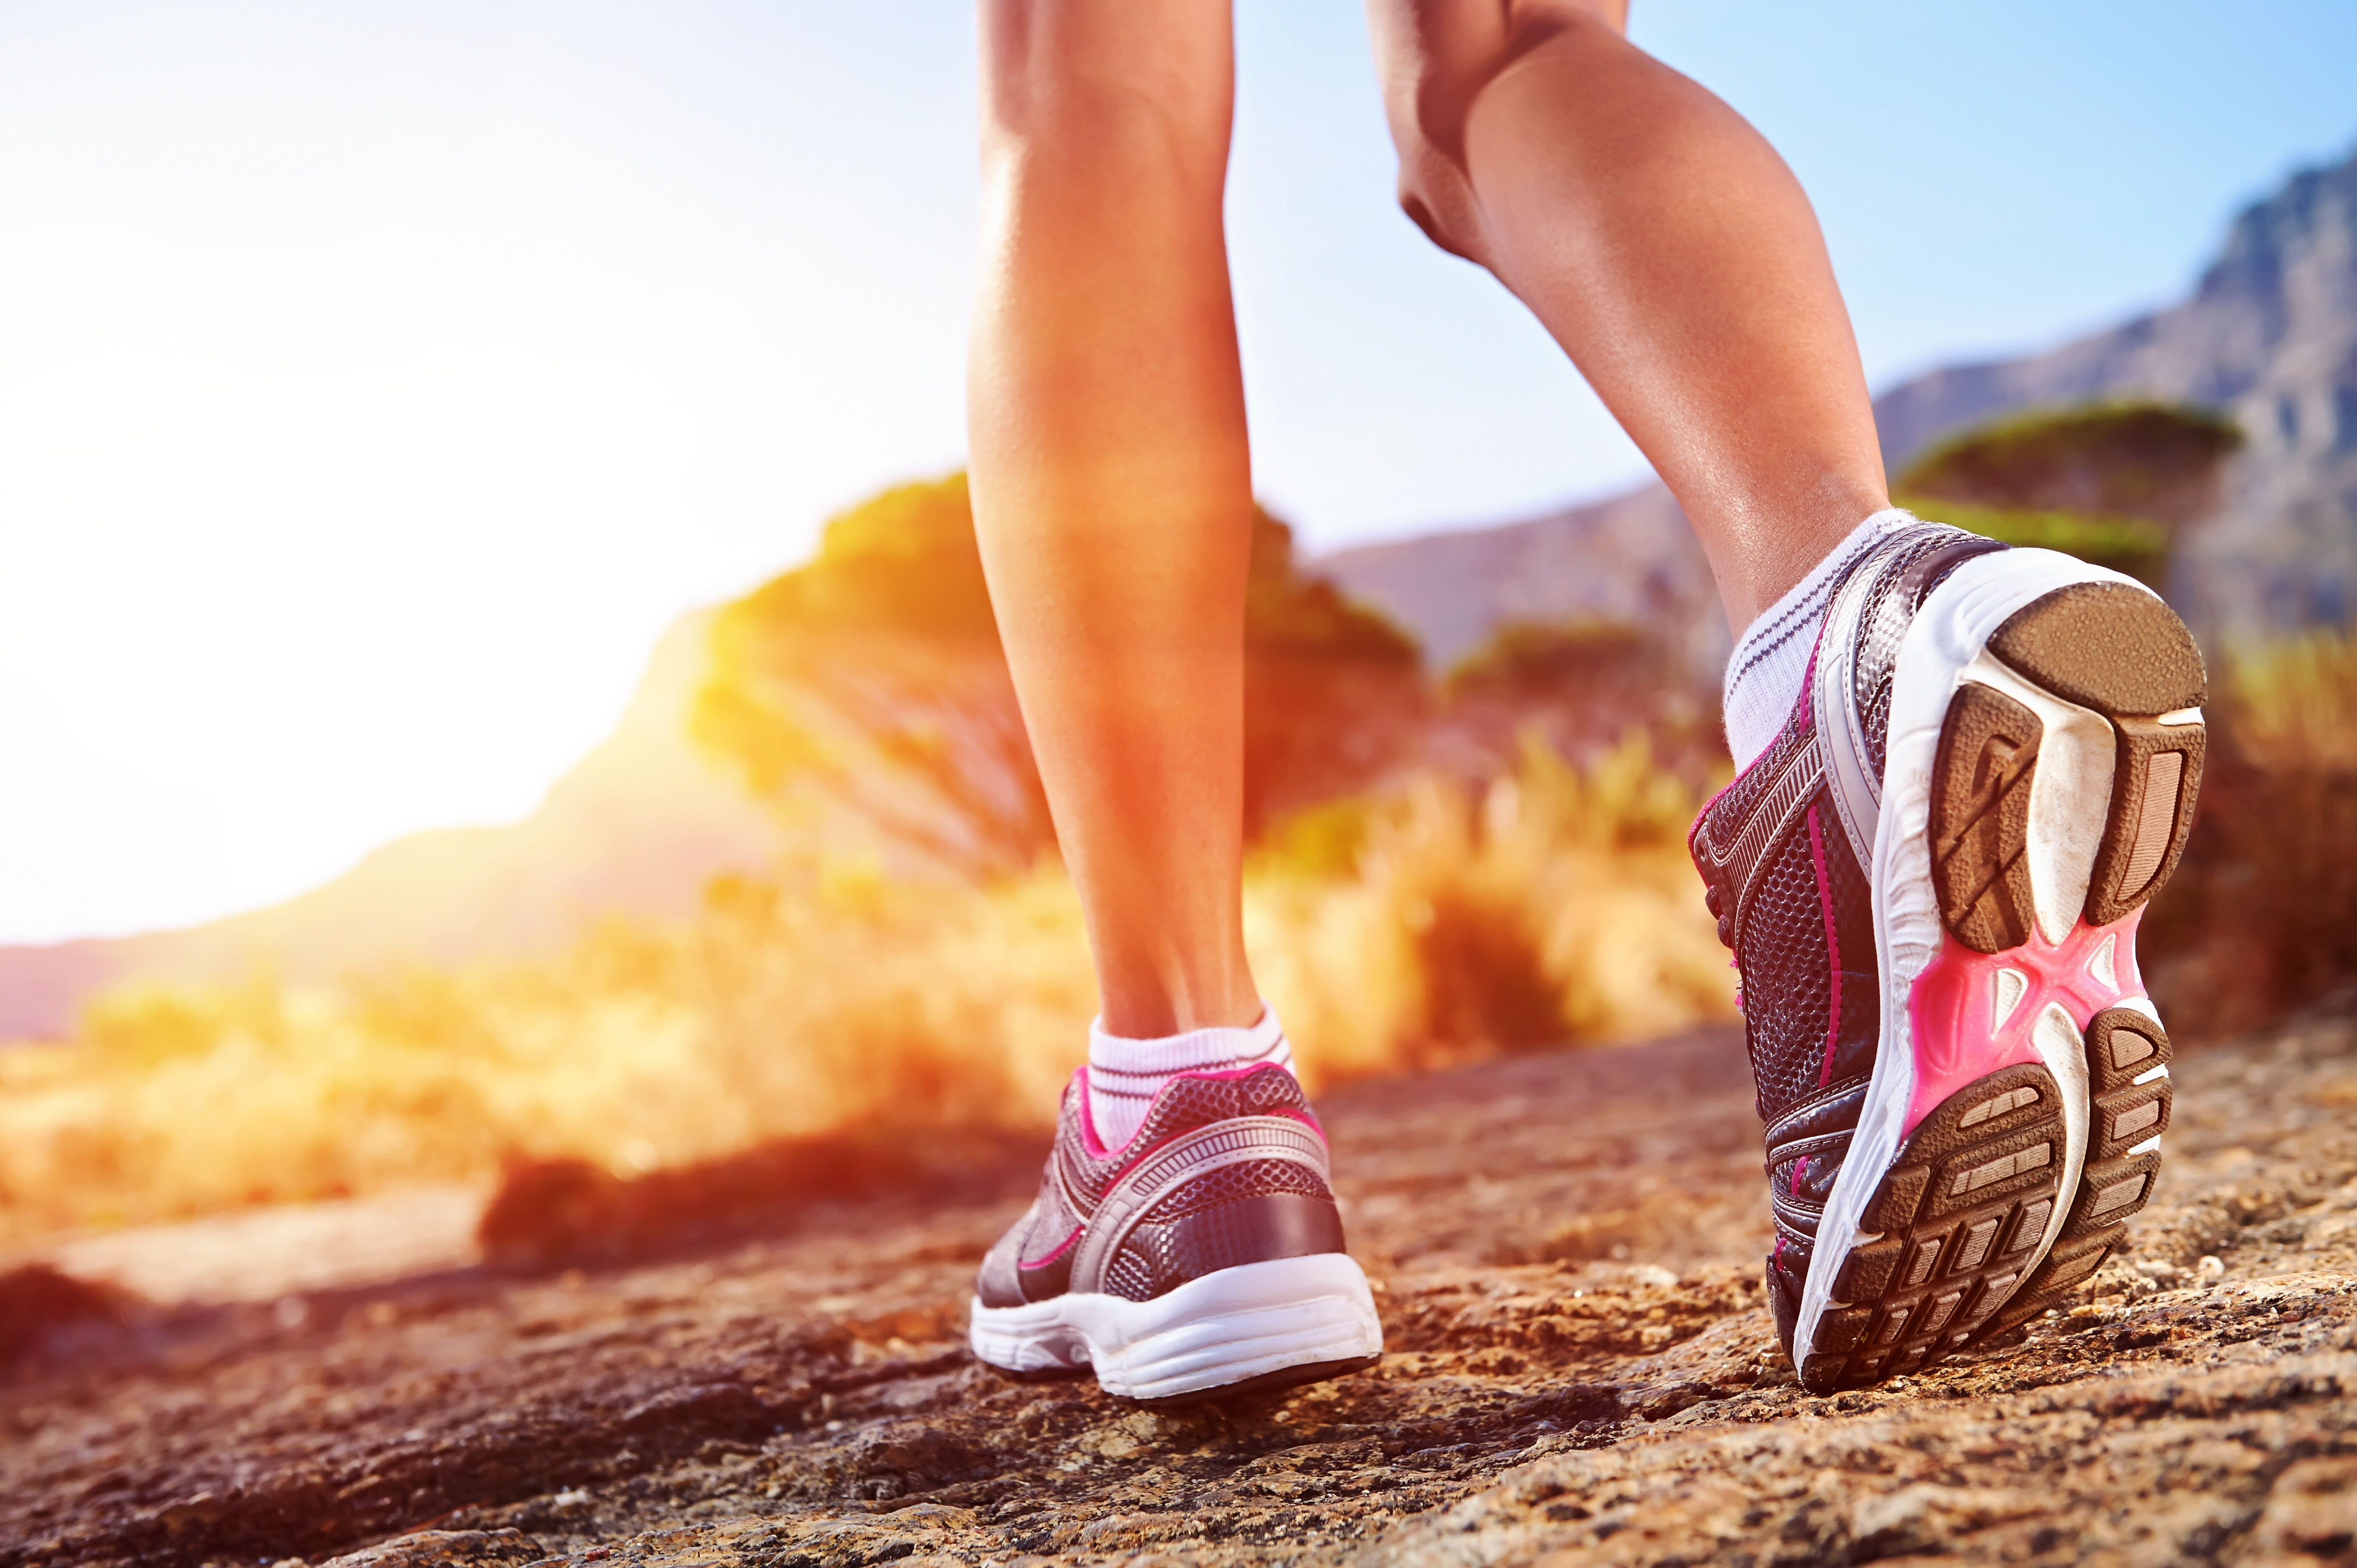 Here's a list of gadgets and gizmos to help you get fit